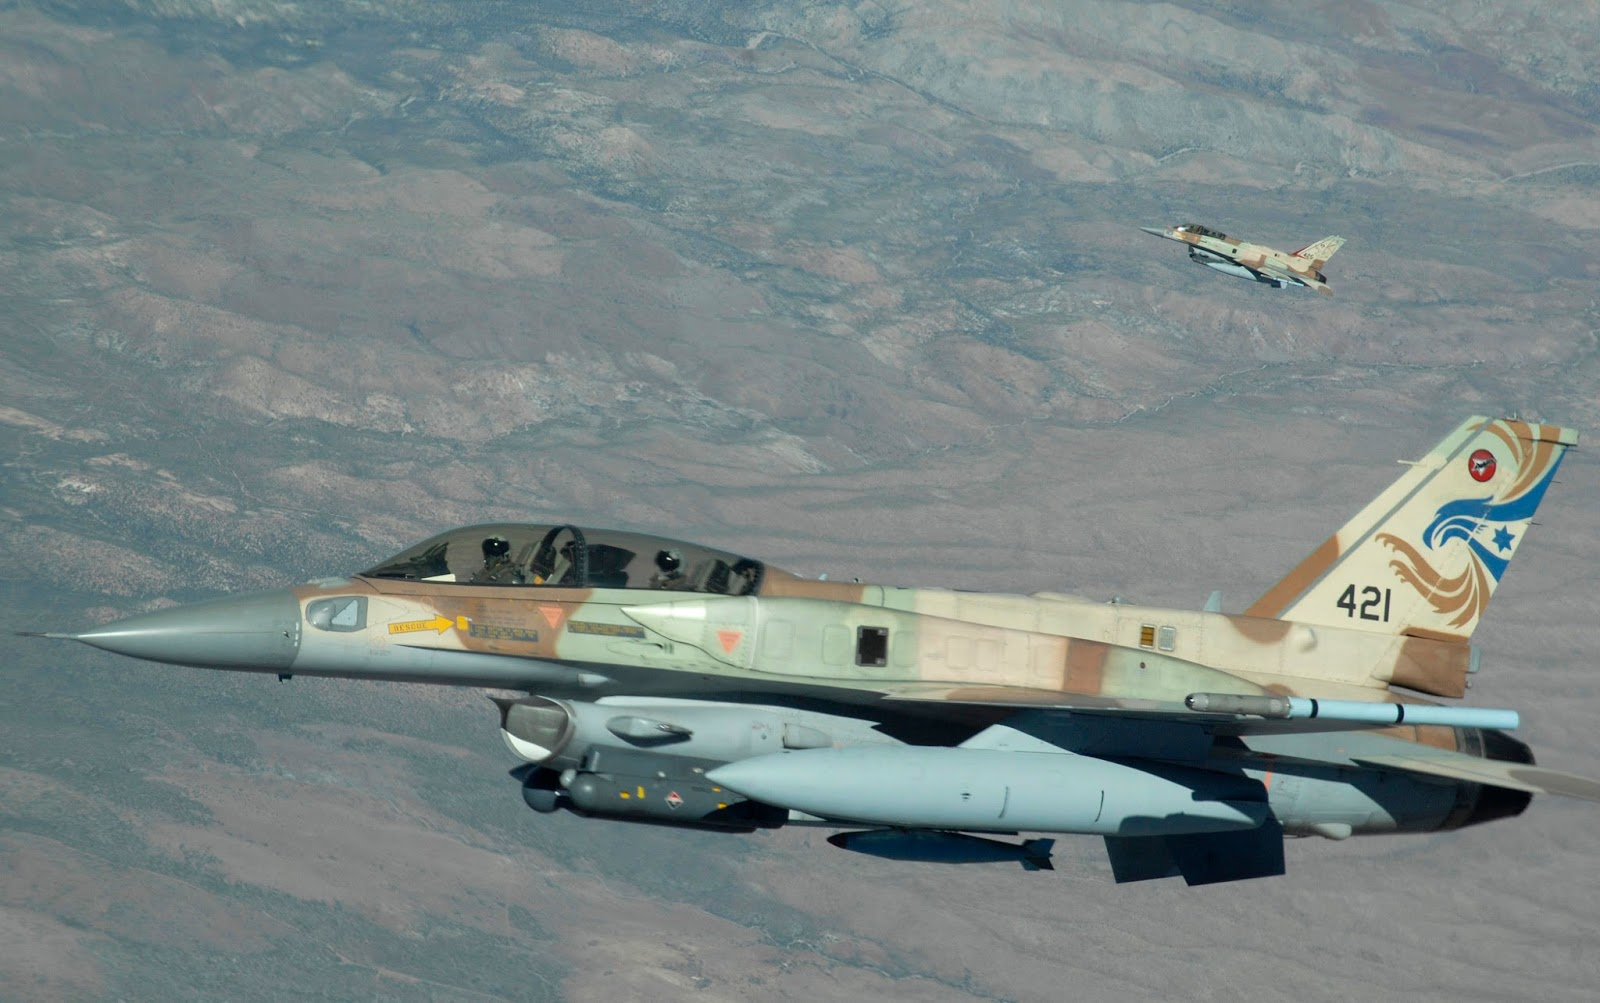 Iran-Israel Confrontation in Syria - More to Come